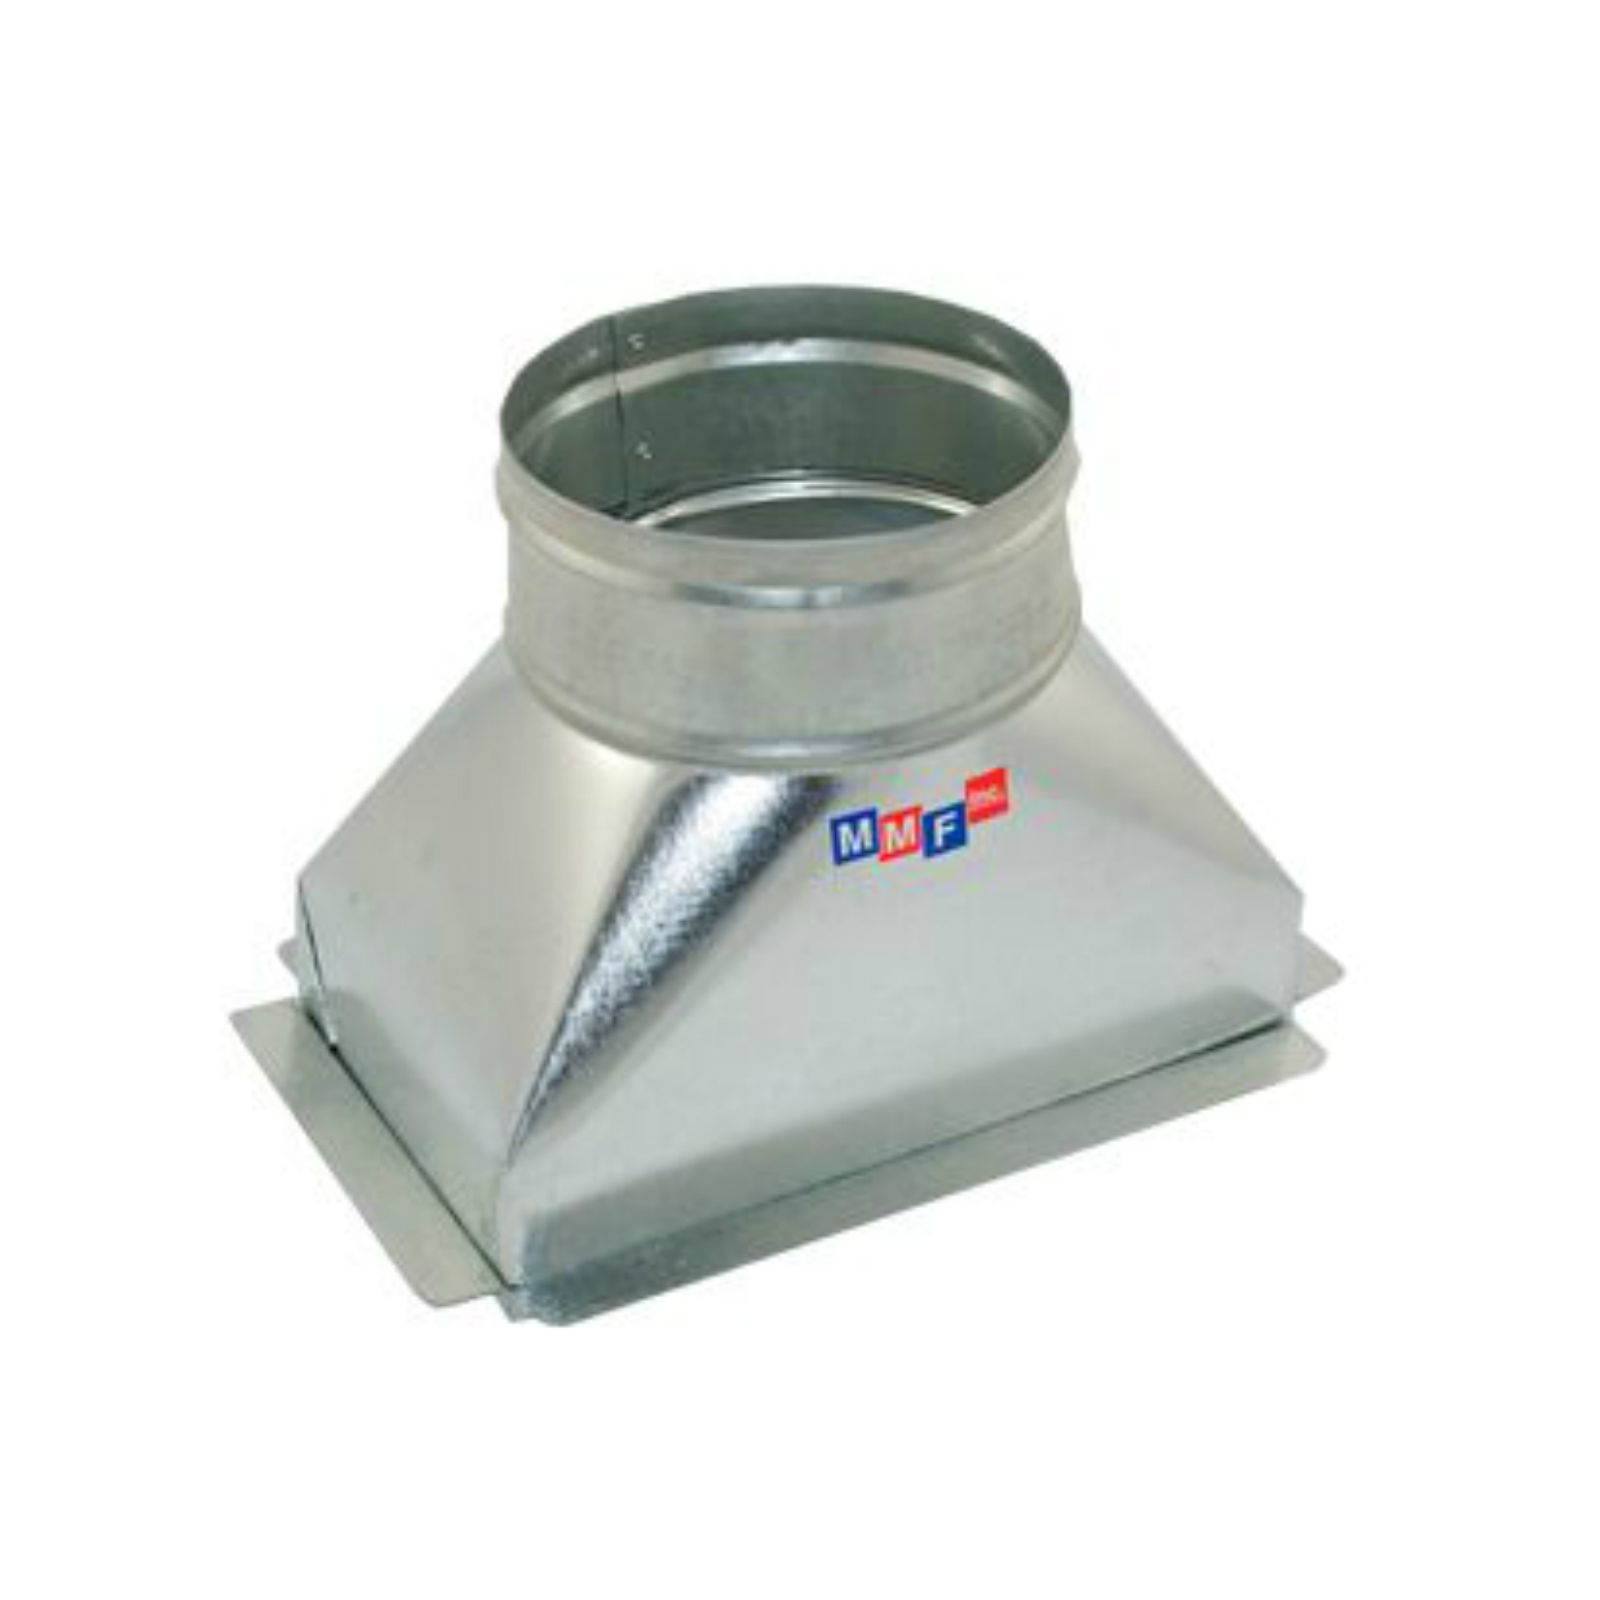 "Modular Metal BTSFG1006063 - Sealed Floor Box - 30 Gauge - With Plaster Ground Flange 10"" X 06"" X06"" Round - With 3"" Straight"